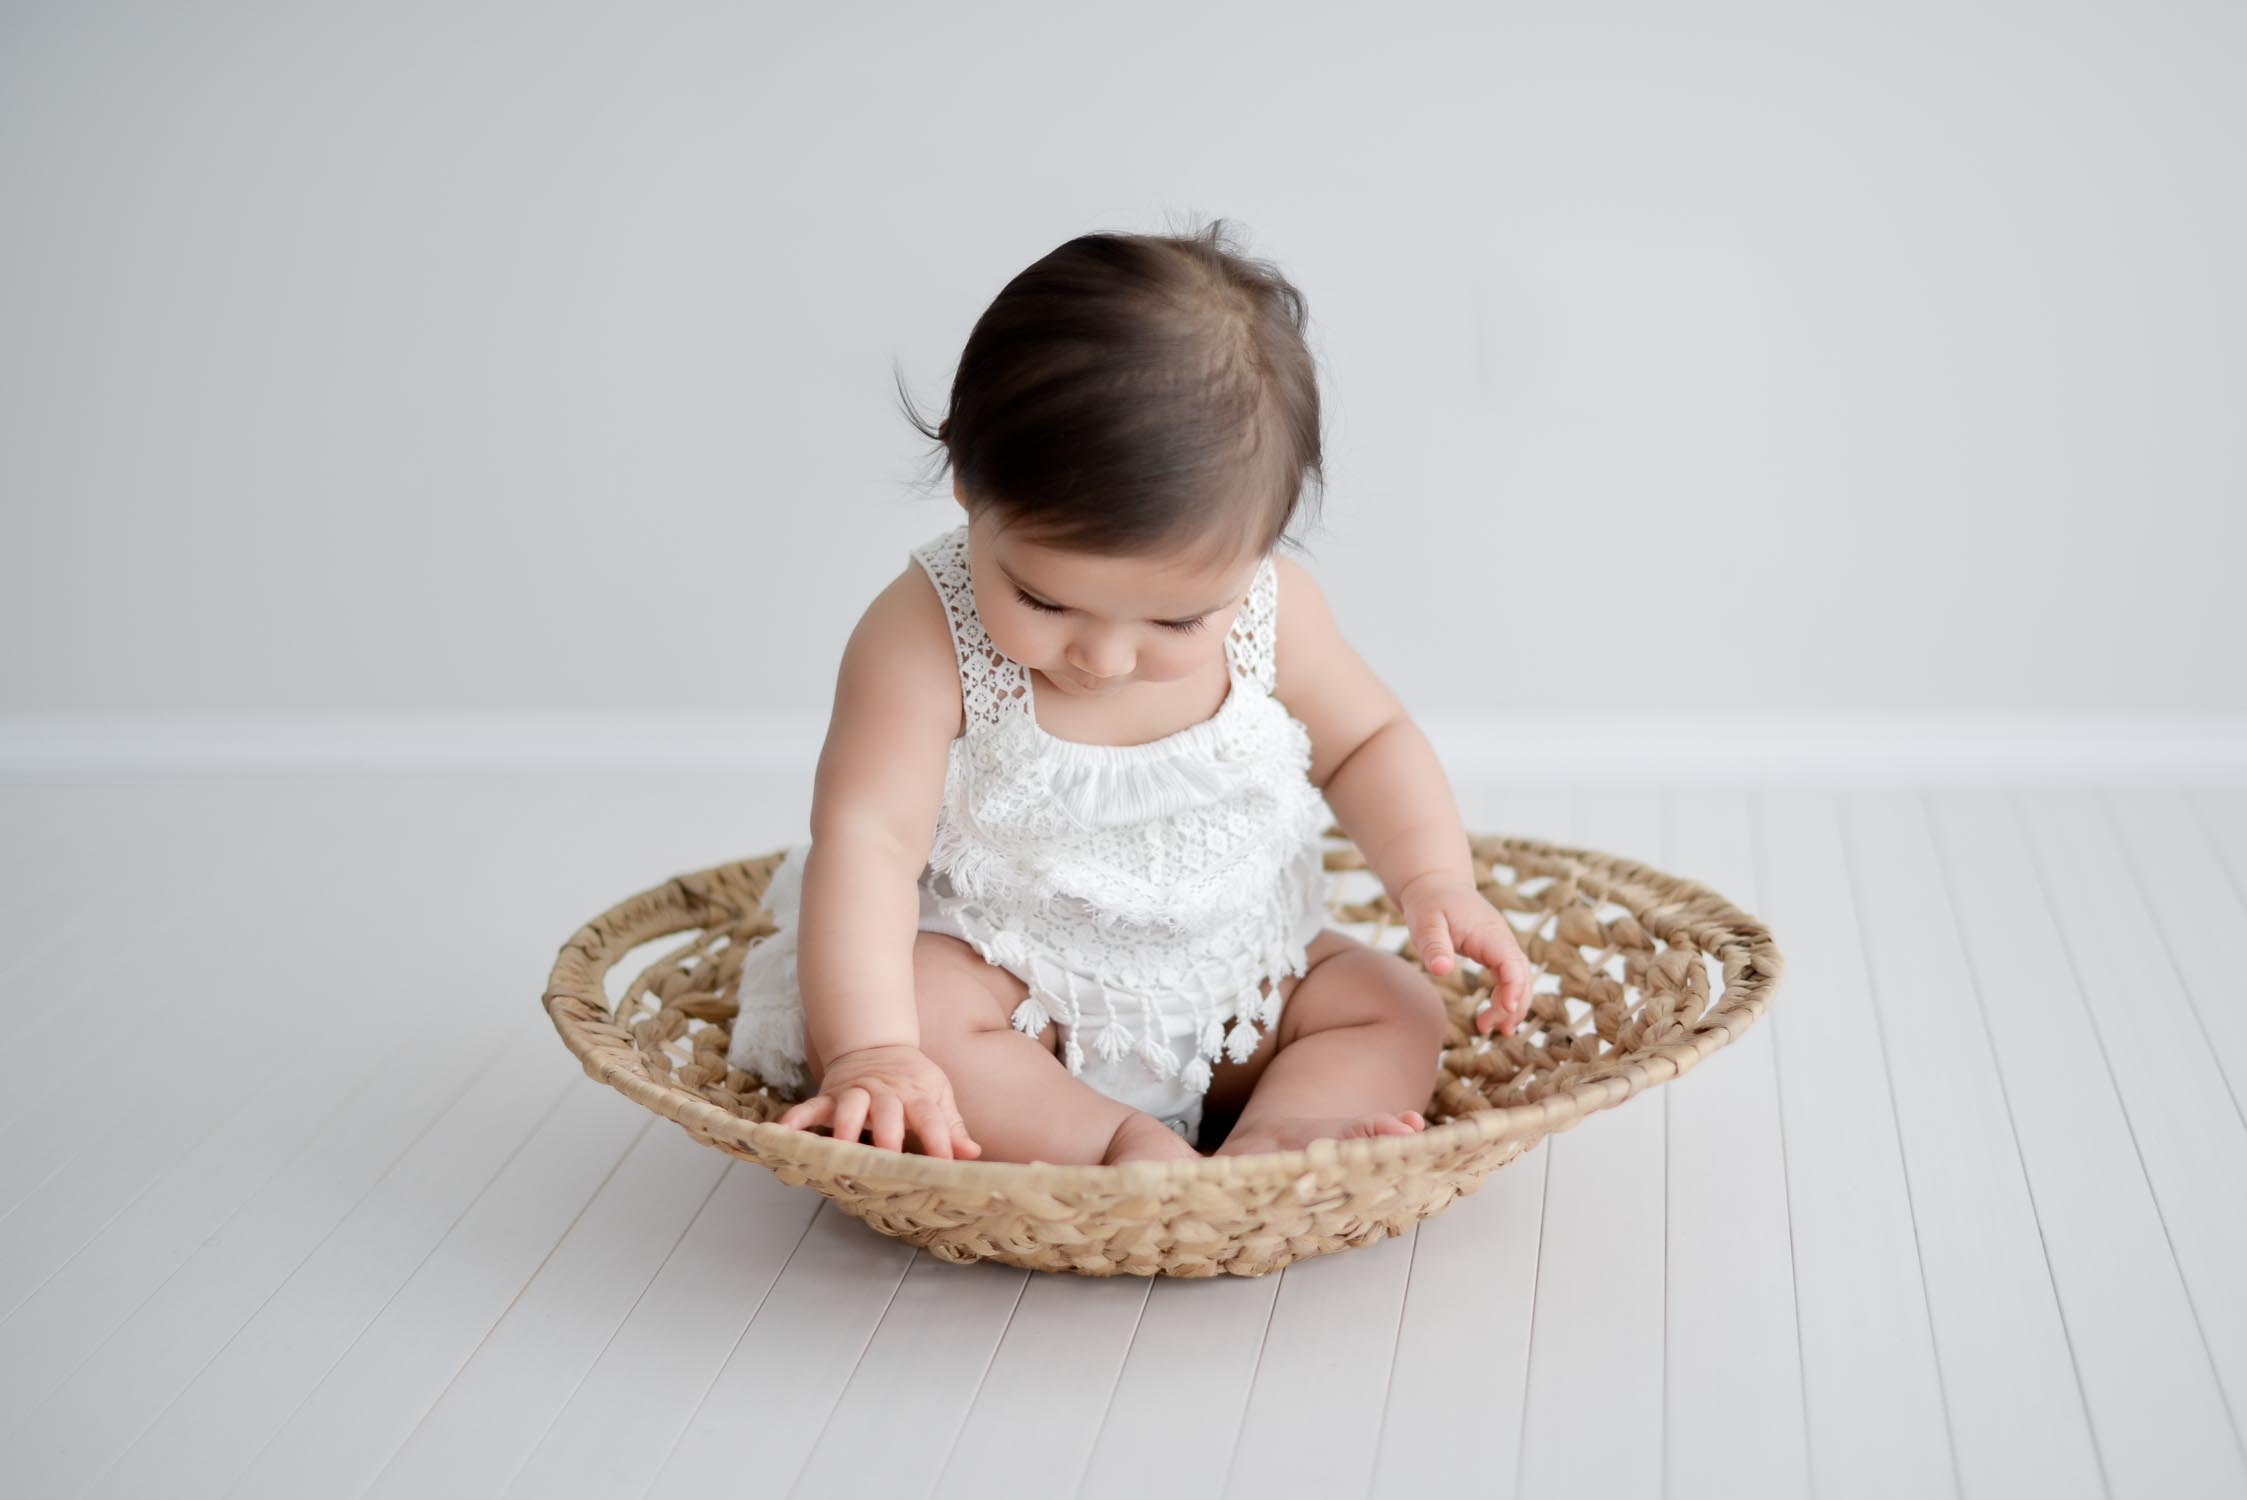 young baby sitting in shallow basket looking down